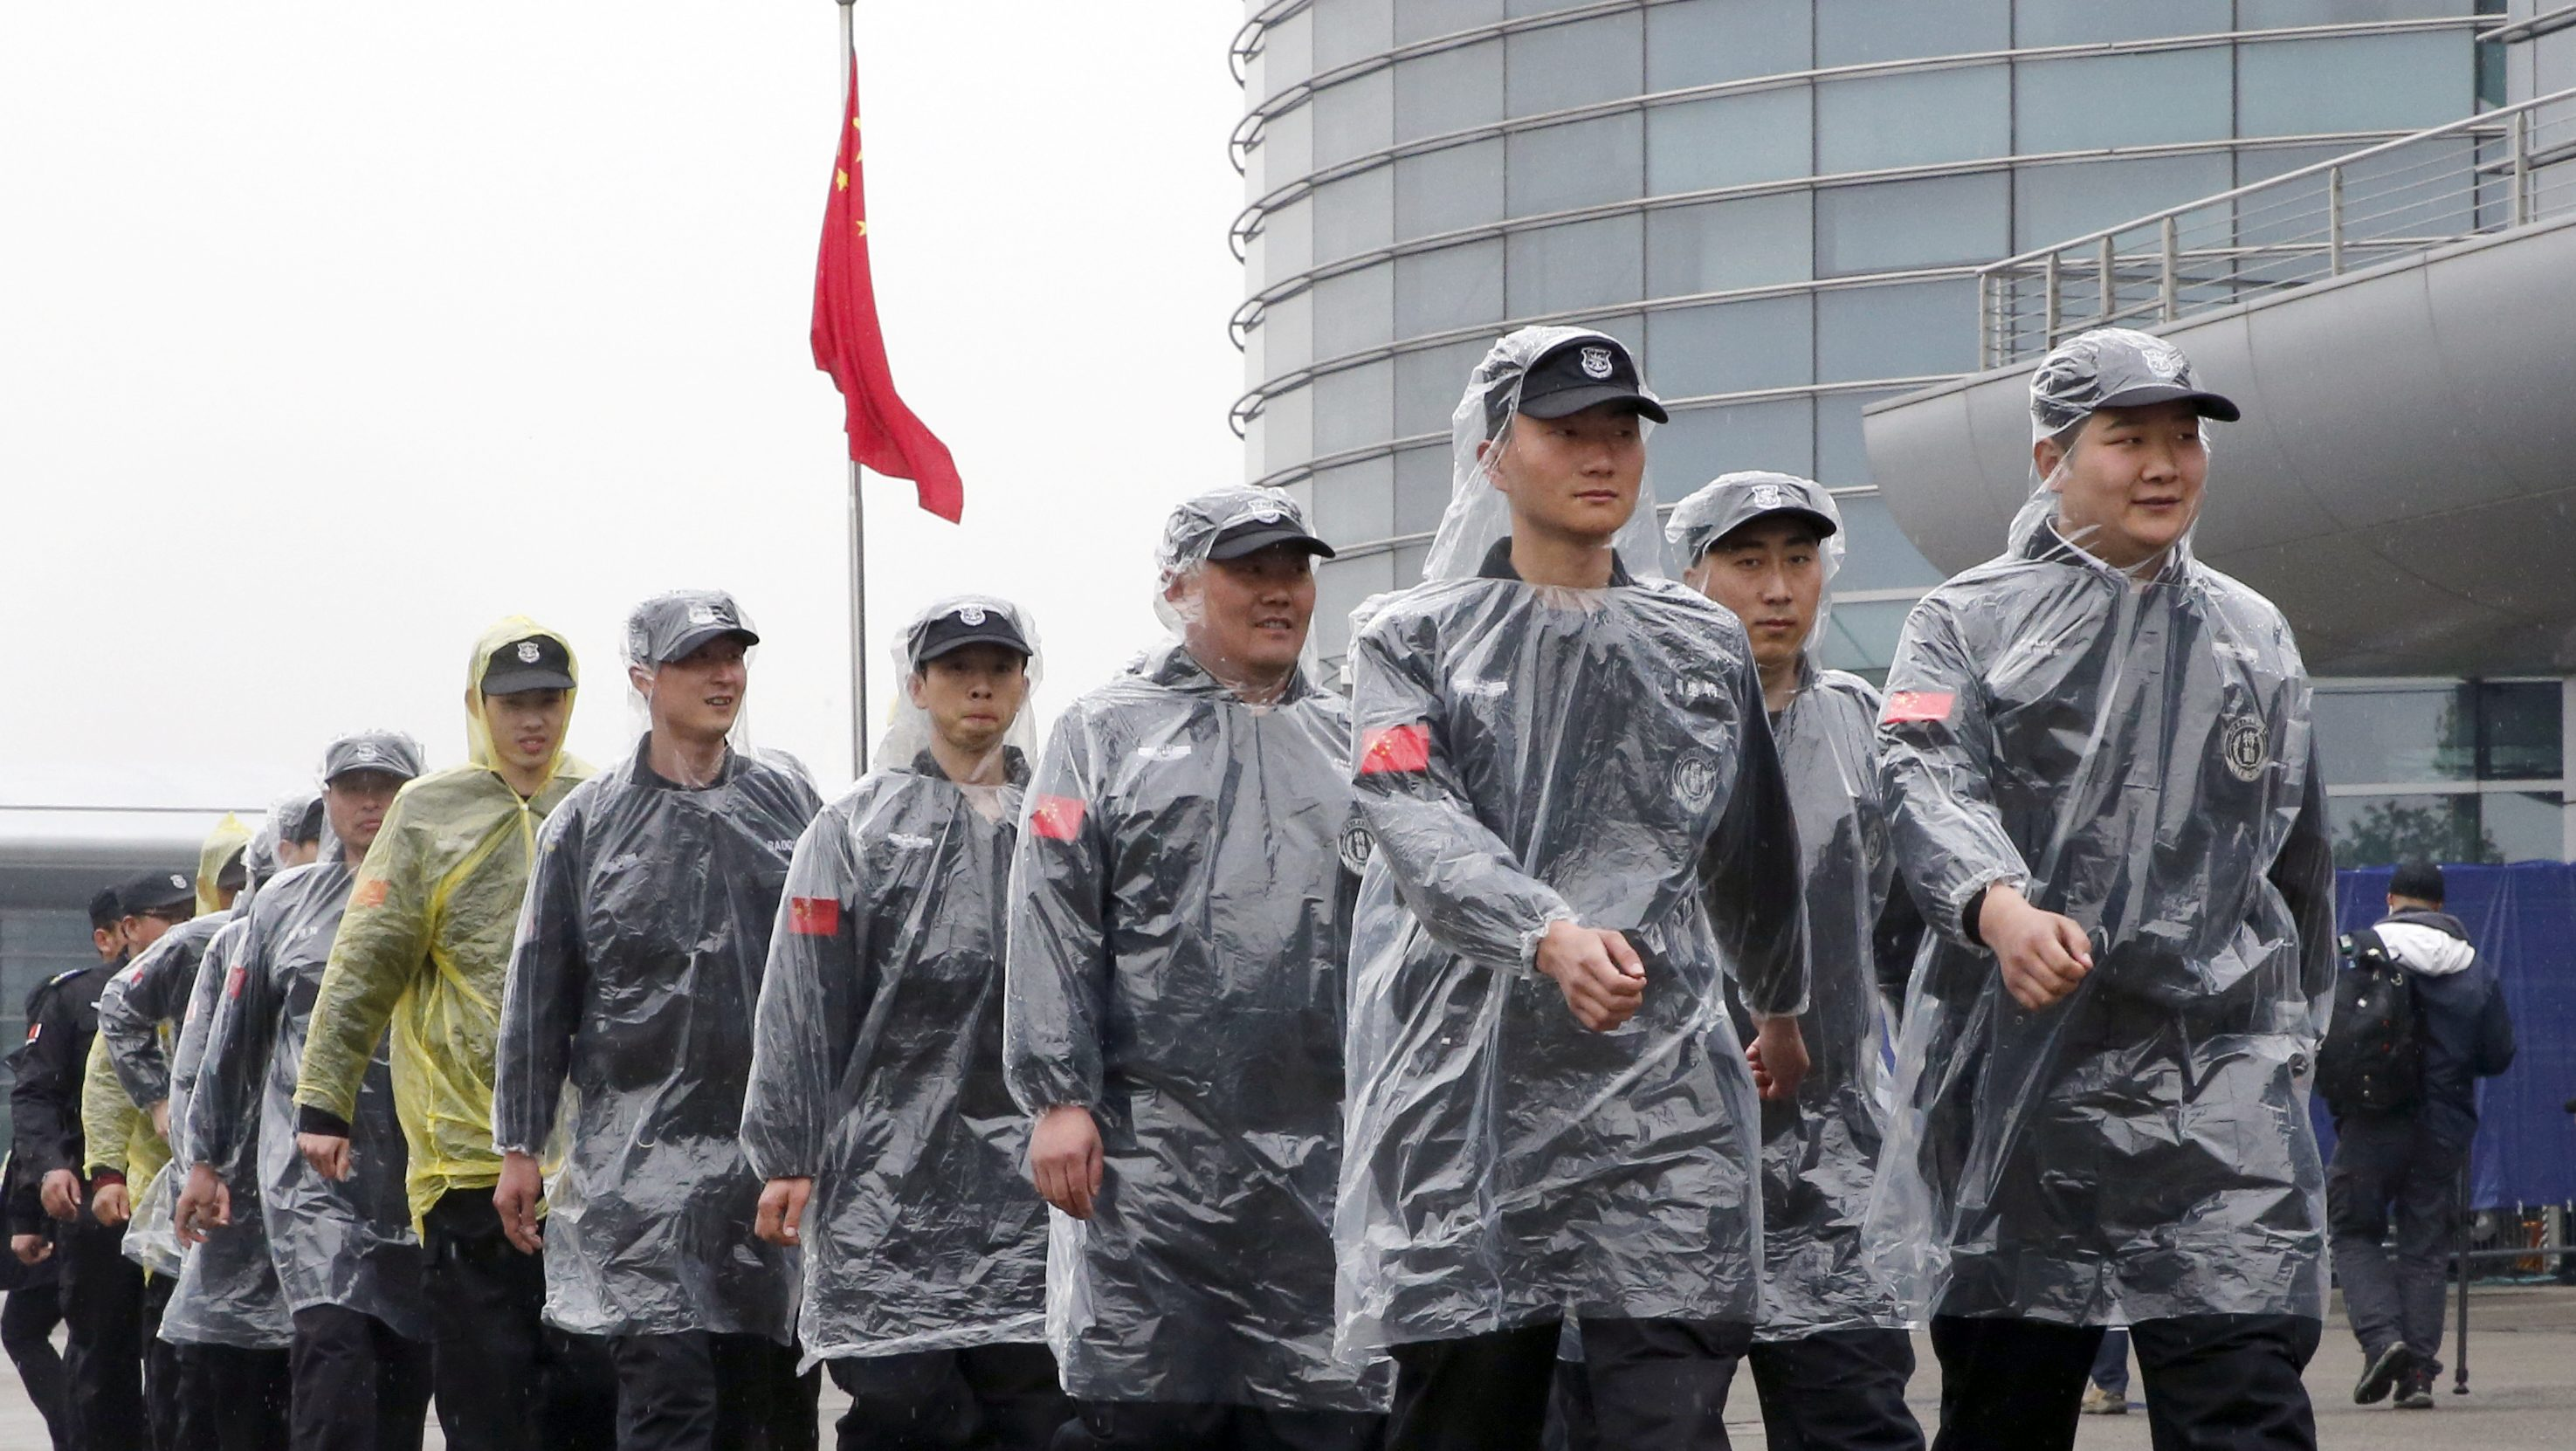 Security personnel wearing rain covers march at the paddock of the Shanghai International Circuit ahead of the Chinese Formula One Grand Prix at in Shanghai, China, Friday, April 7, 2017. The second practice session was canceled as the circuit's medical helicopter was unable to land at nearby hospitals or airports in case of an accident. (AP Photo/Toru Takahashi)